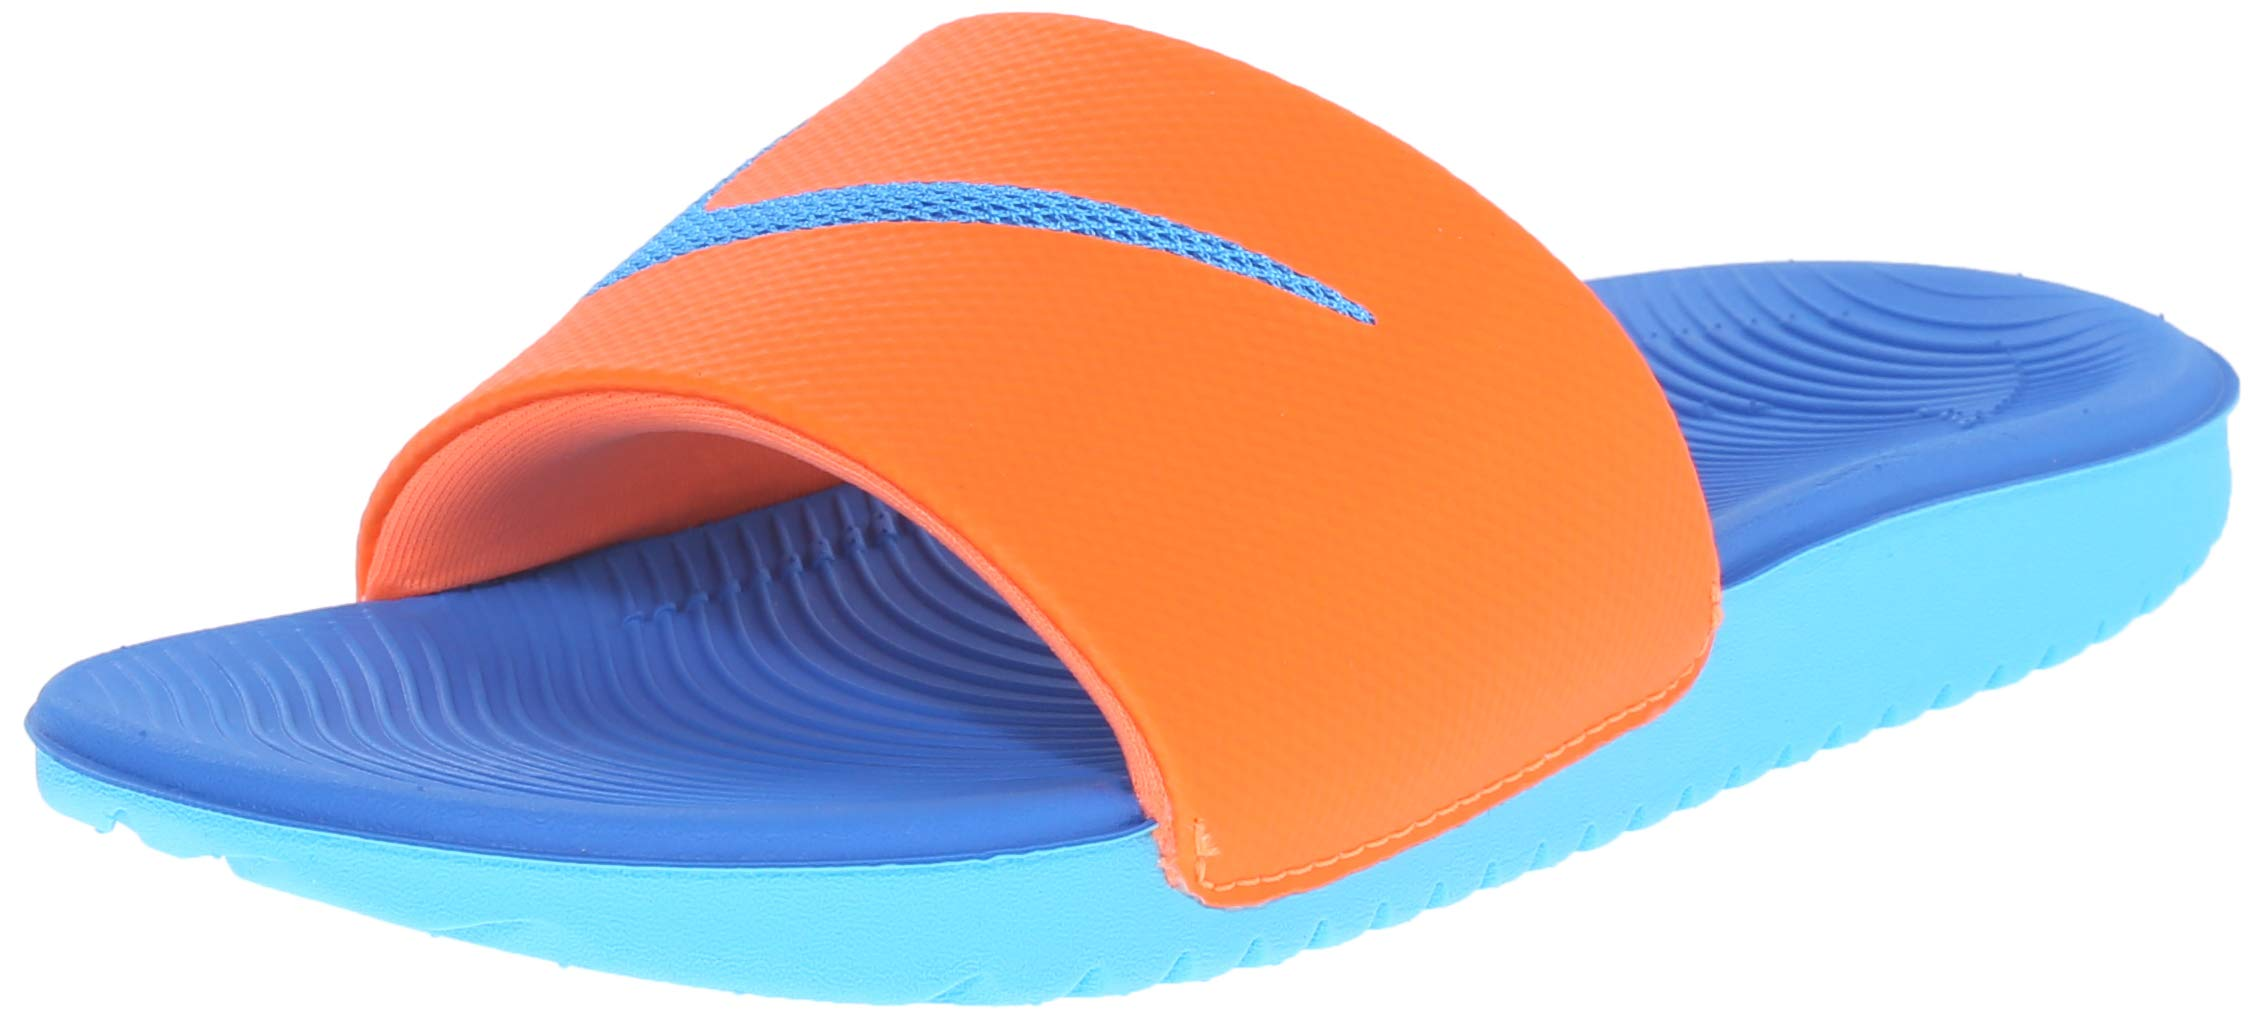 NIKE Kids' Kawa Slide Sandal, Orange/Blue/White, 4 M US Big Kid